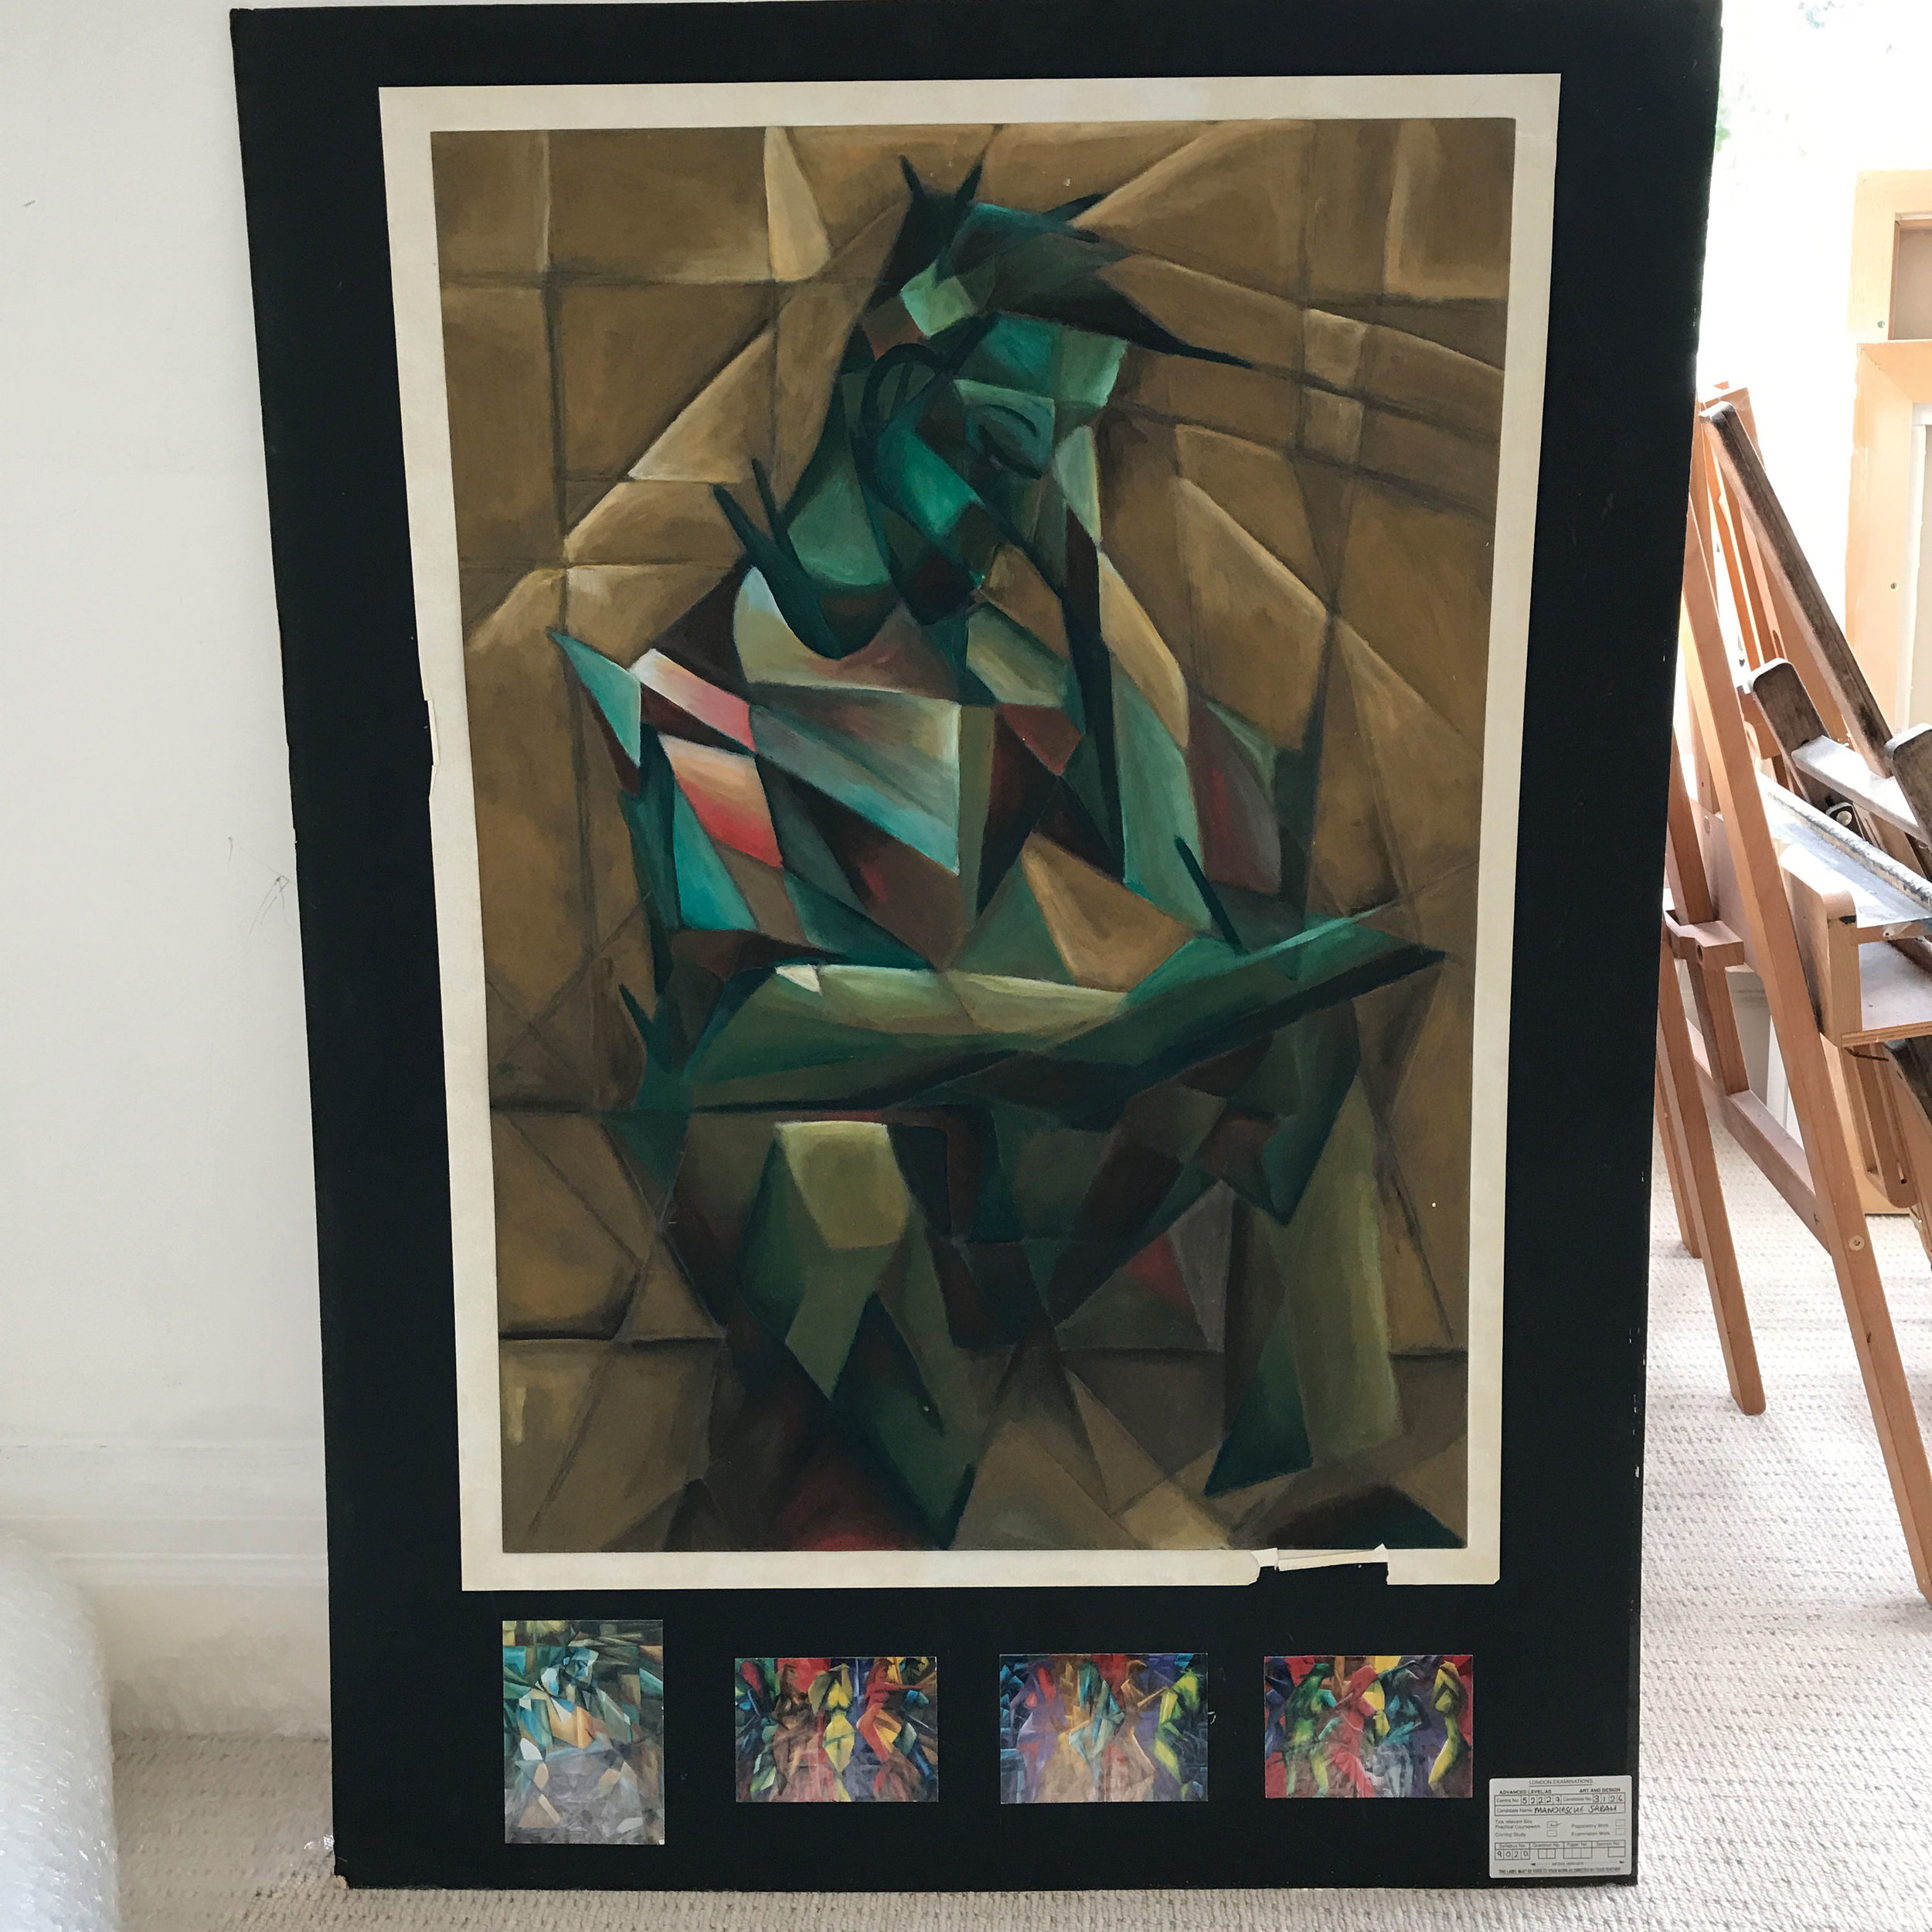 One of my early abstracted and cubist paintings – so early in fact this was part of my A-level coursework!